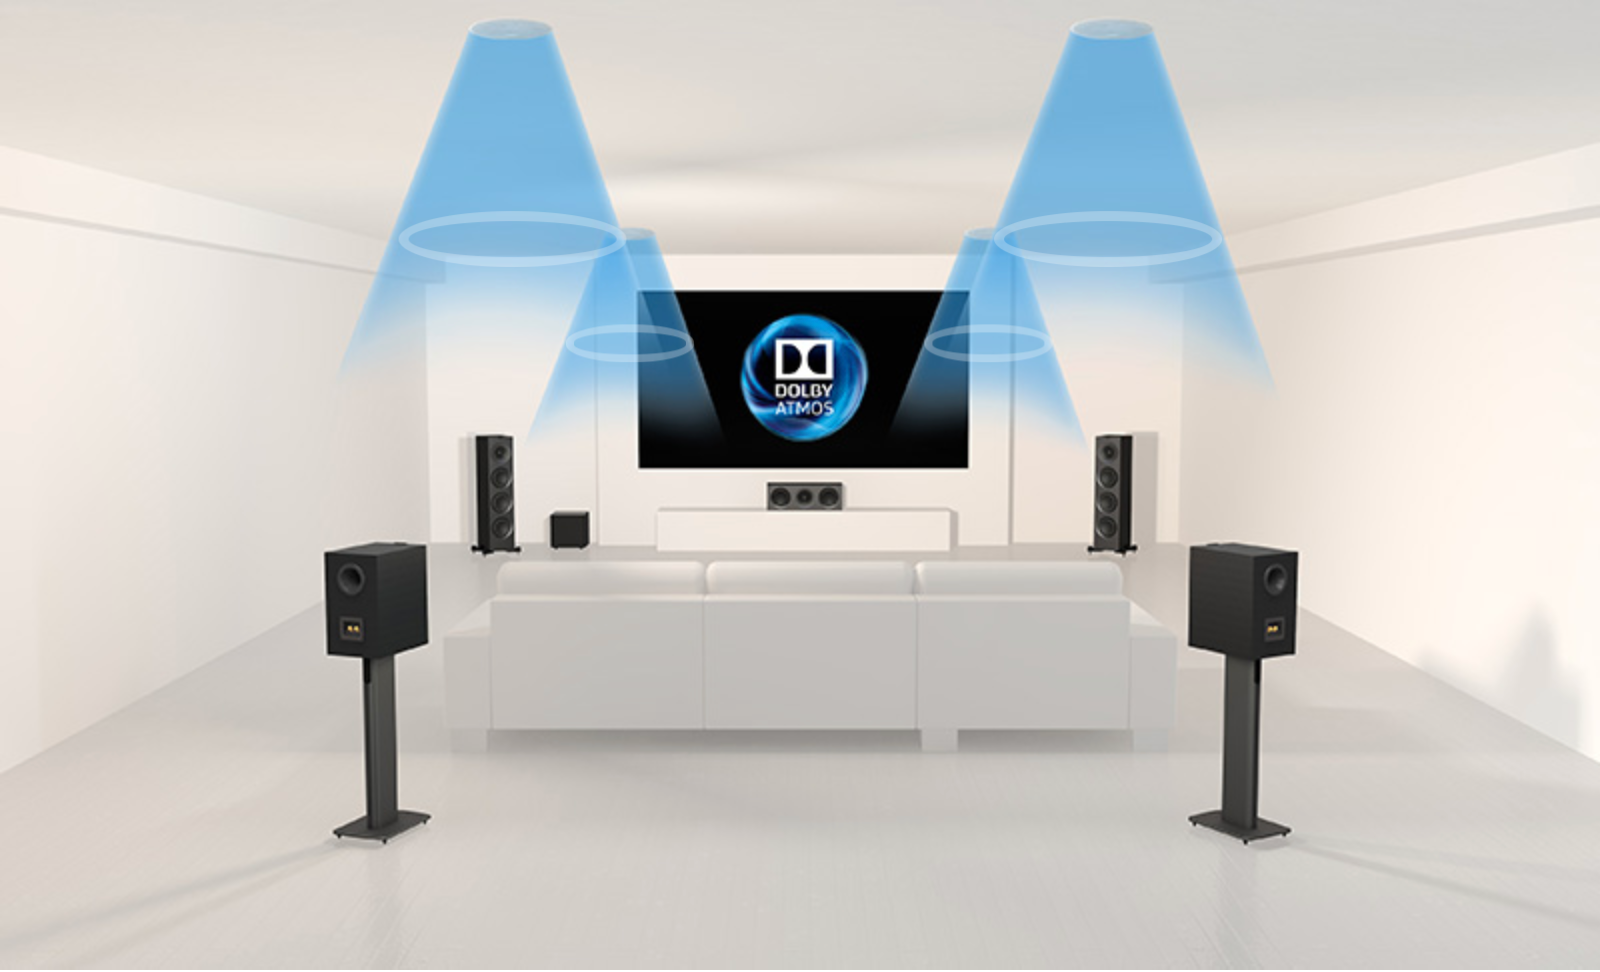 Kef dolby atmos explained melbourne hi fi